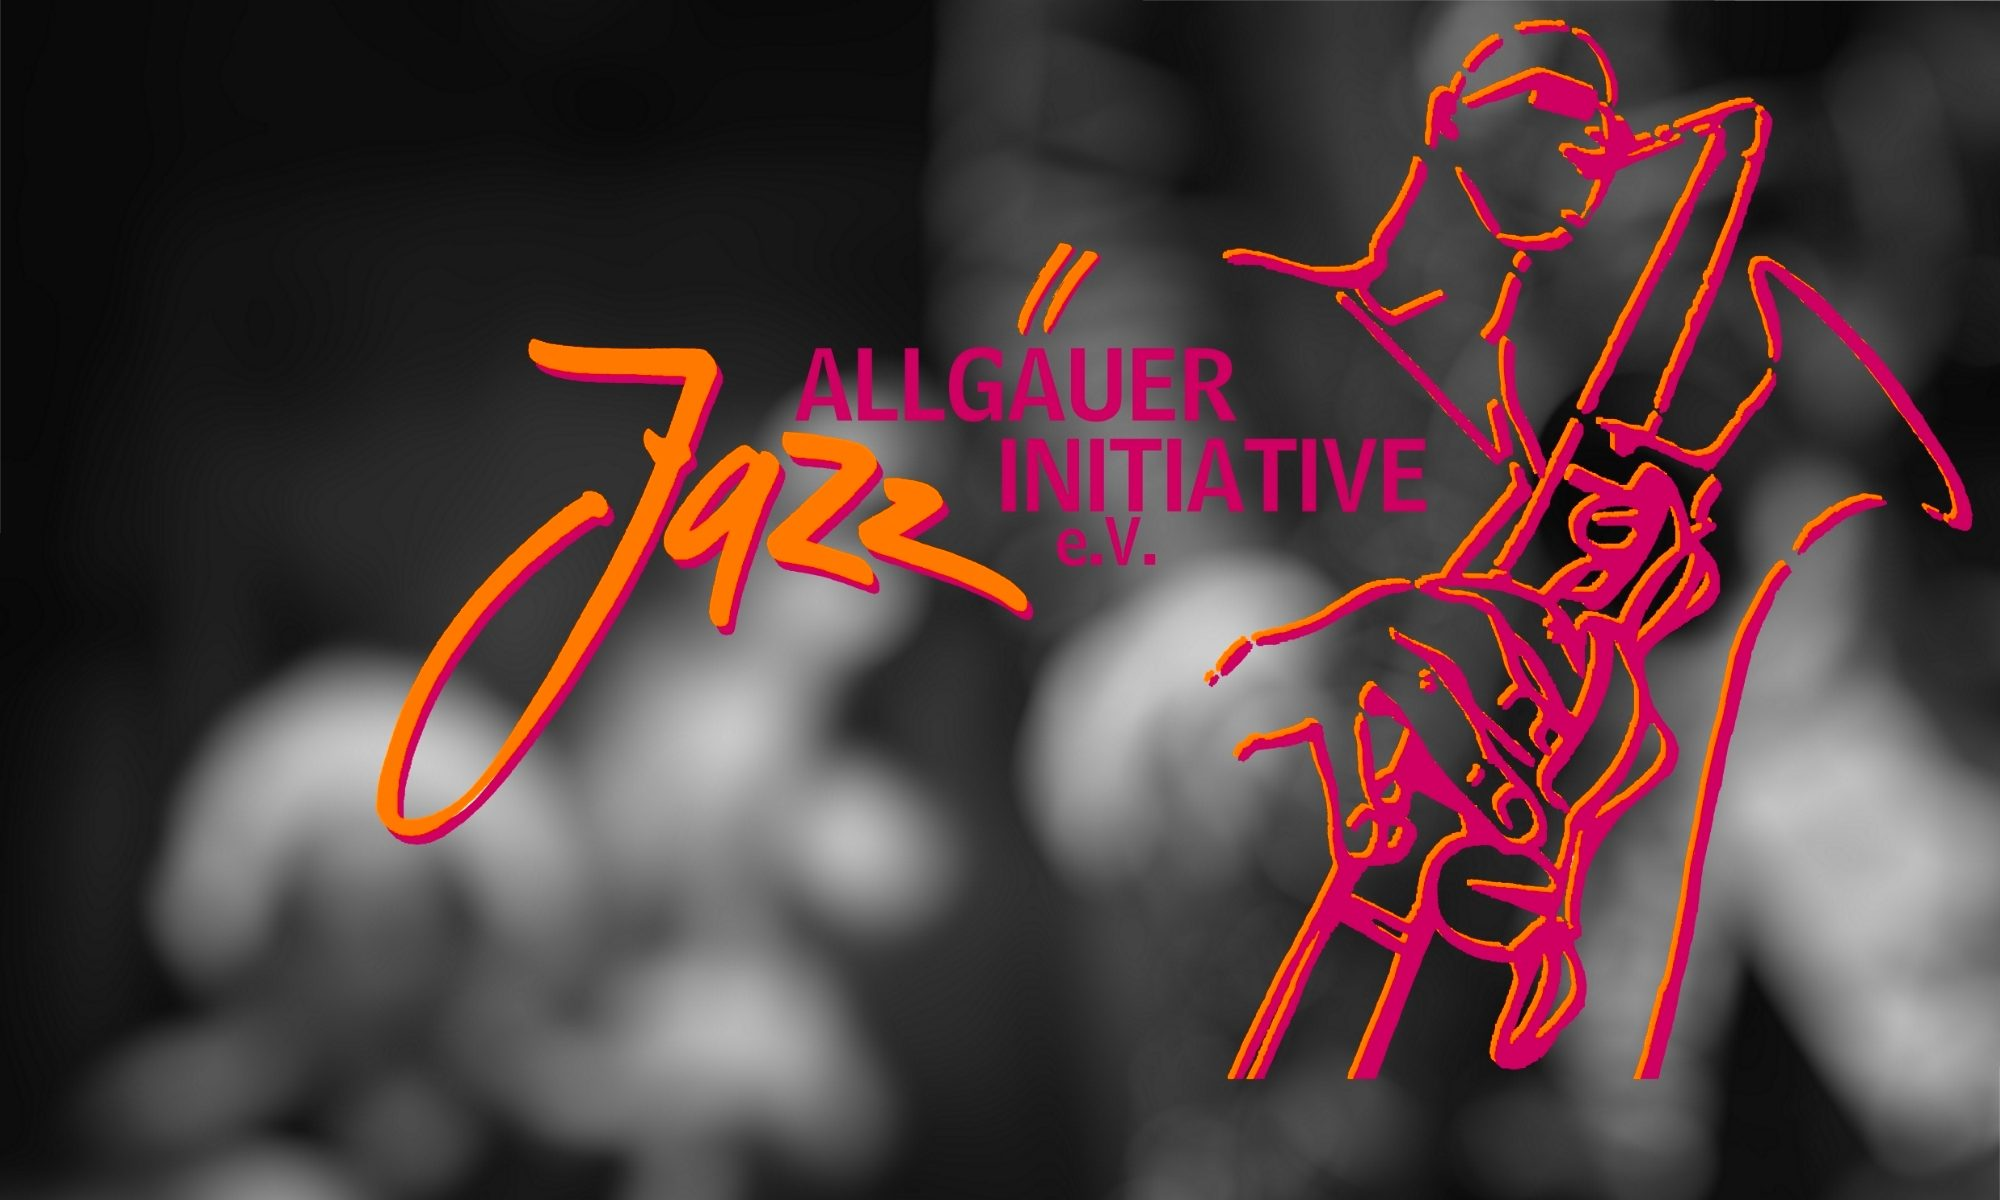 Allgäuer Jazz Initiative e.V.